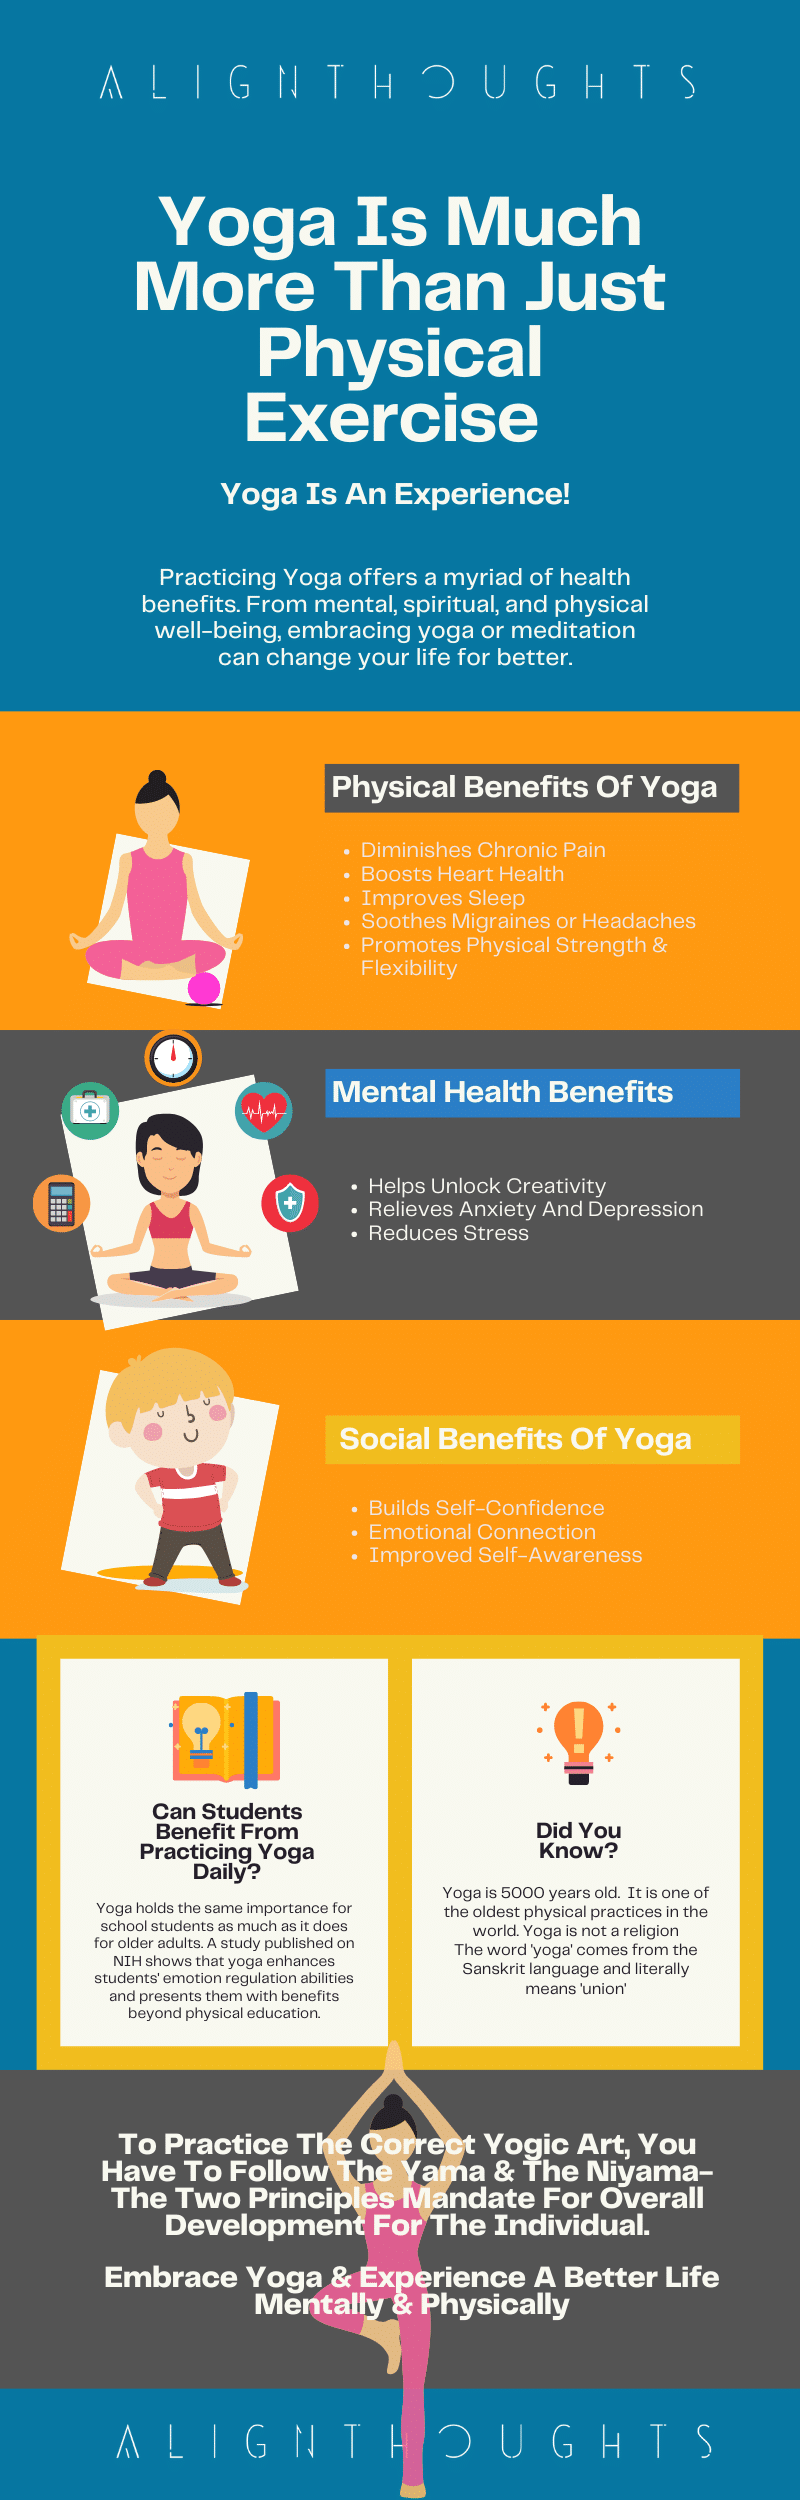 mental and physical health benefits of yoga-alignthoughts